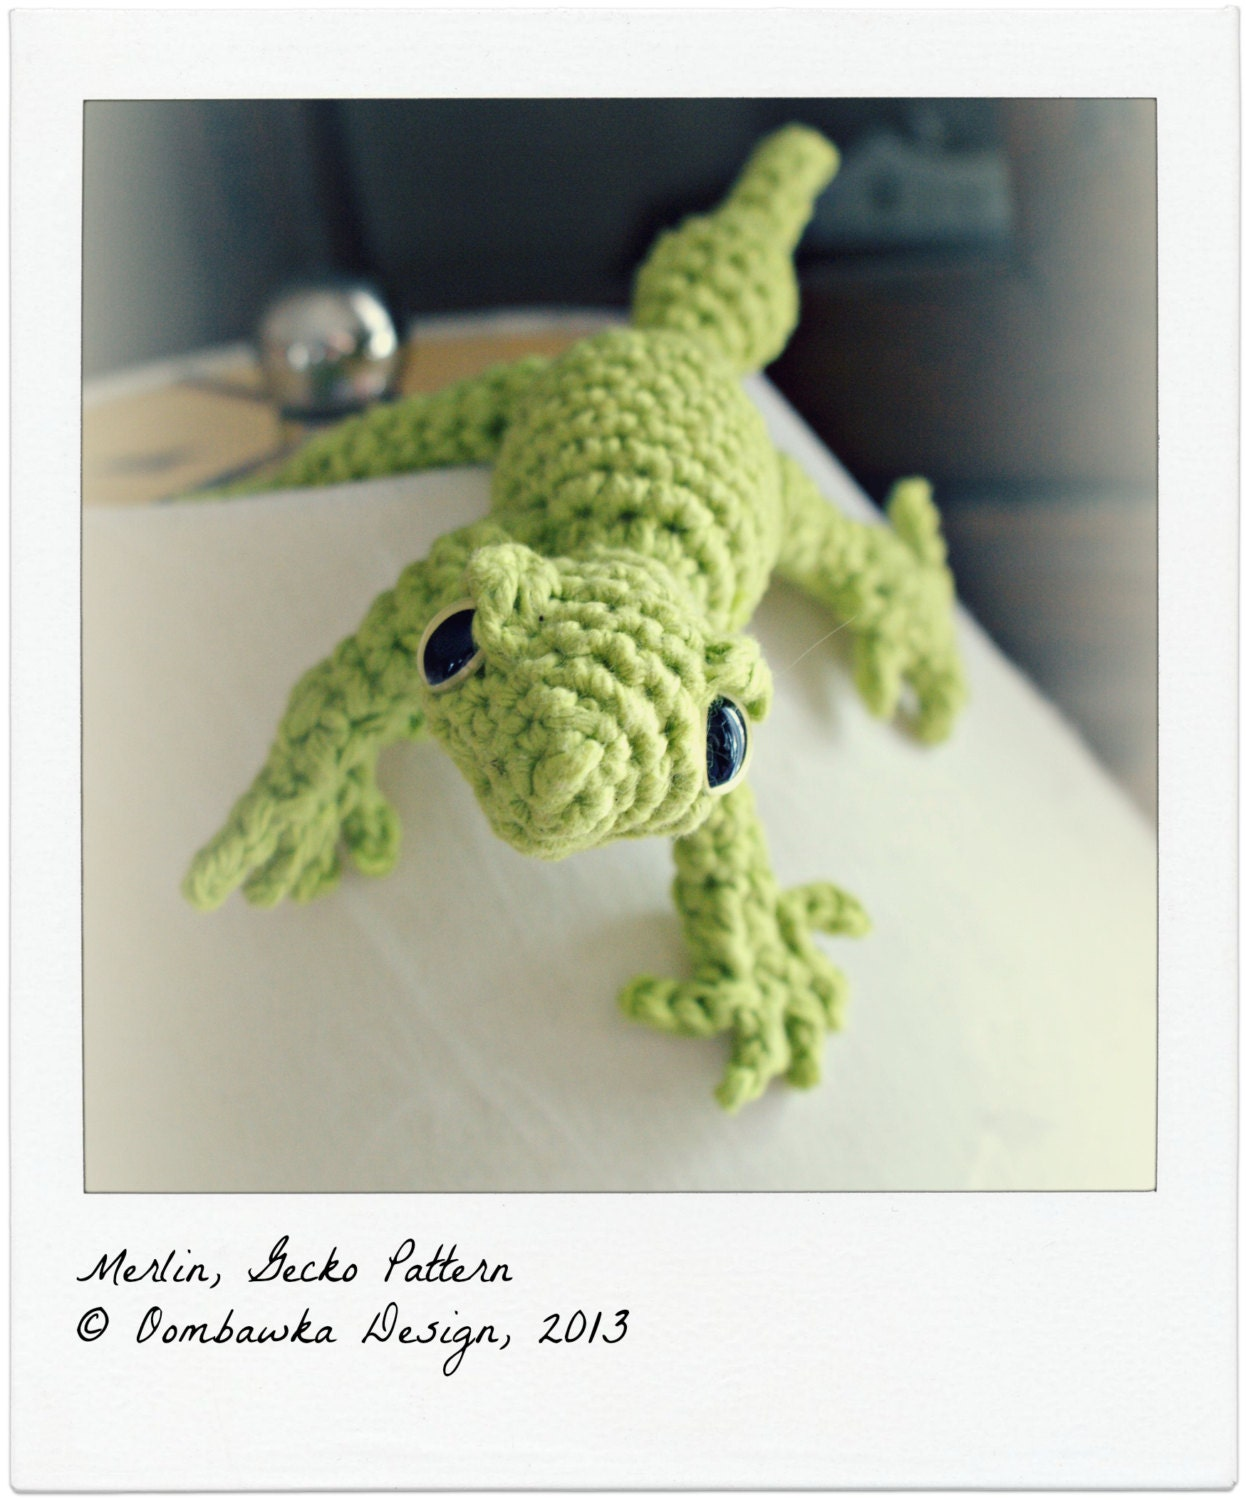 CROCHET PATTERN: MERLIN The Gecko Amigurumi